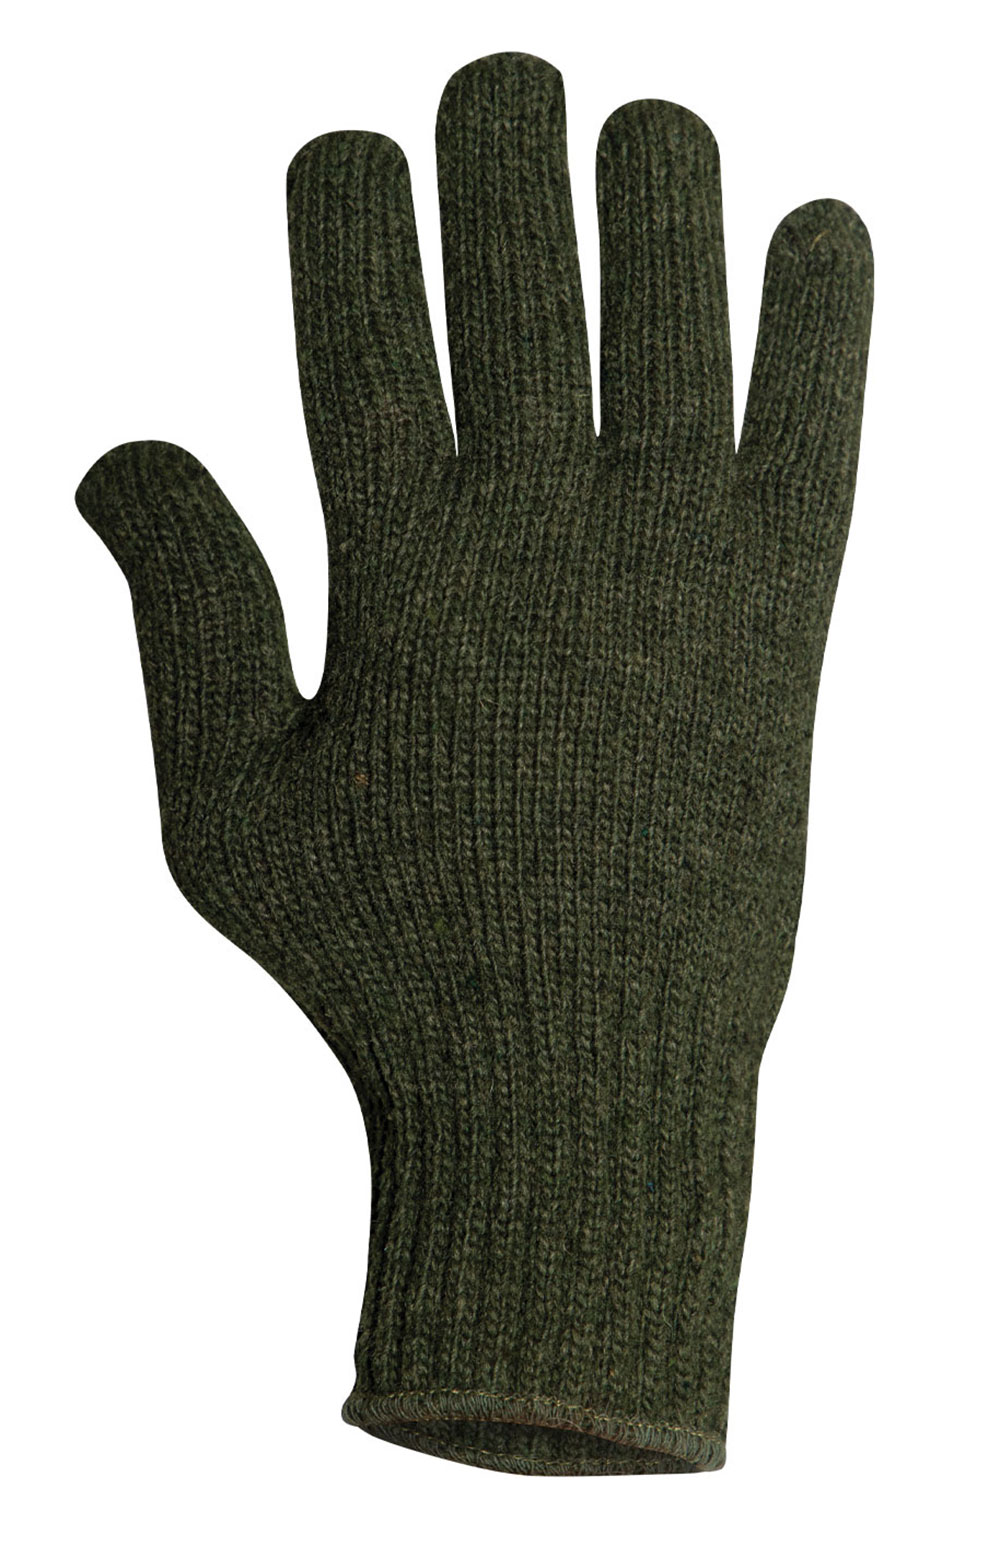 (8218) Wool Glove Liners - Olive Drab 3